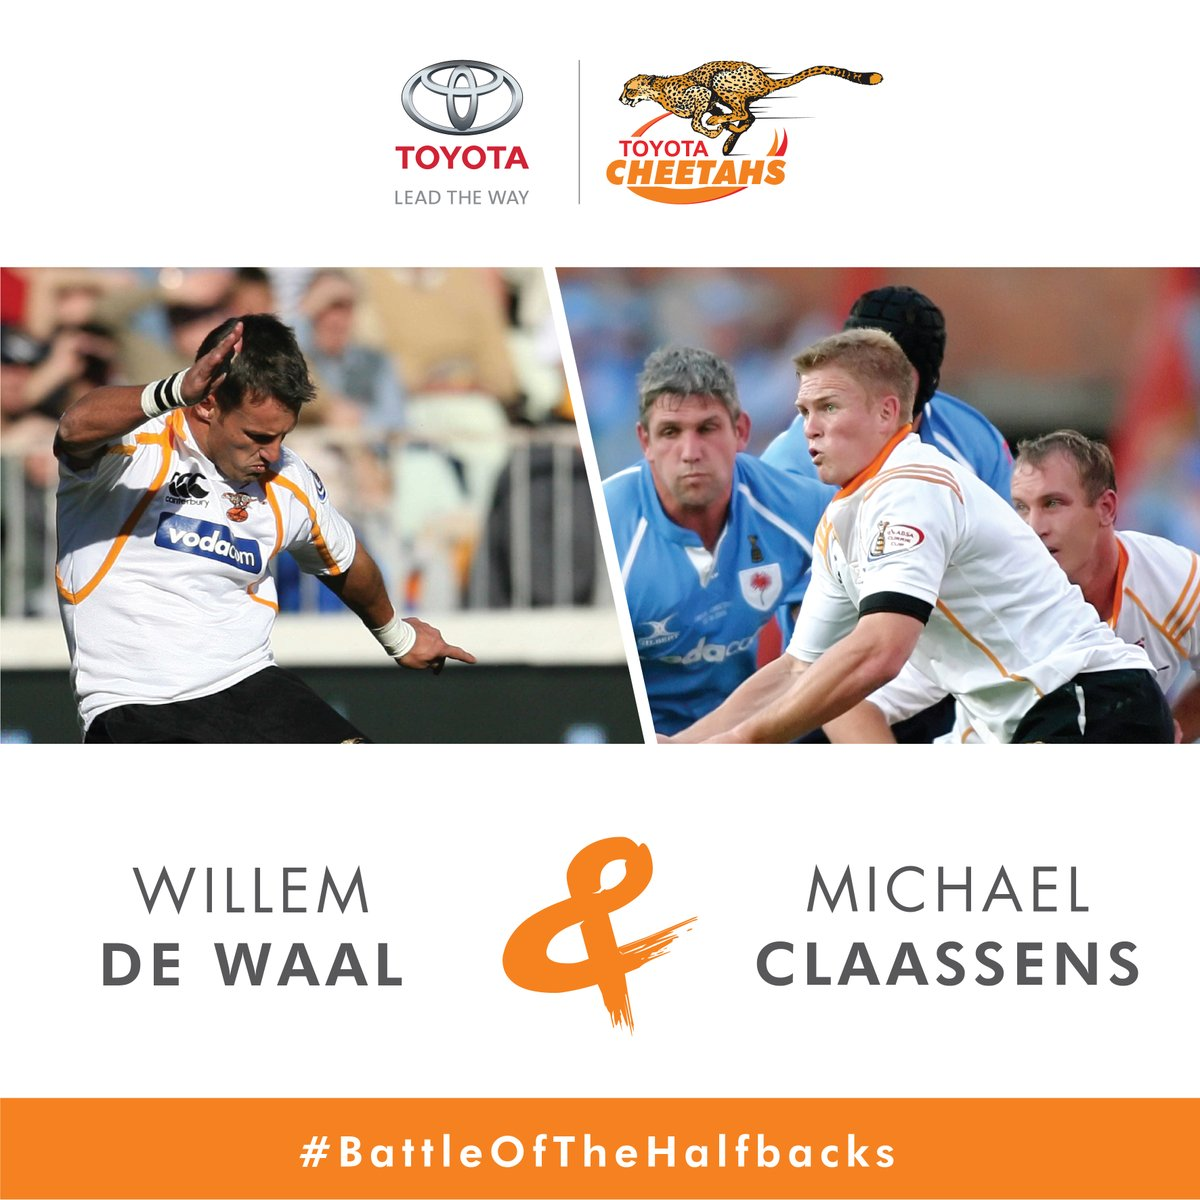 Voted by the fans! Willem de Waal & Michael Claasens are our most popular half-back pair. @ToyotaSA